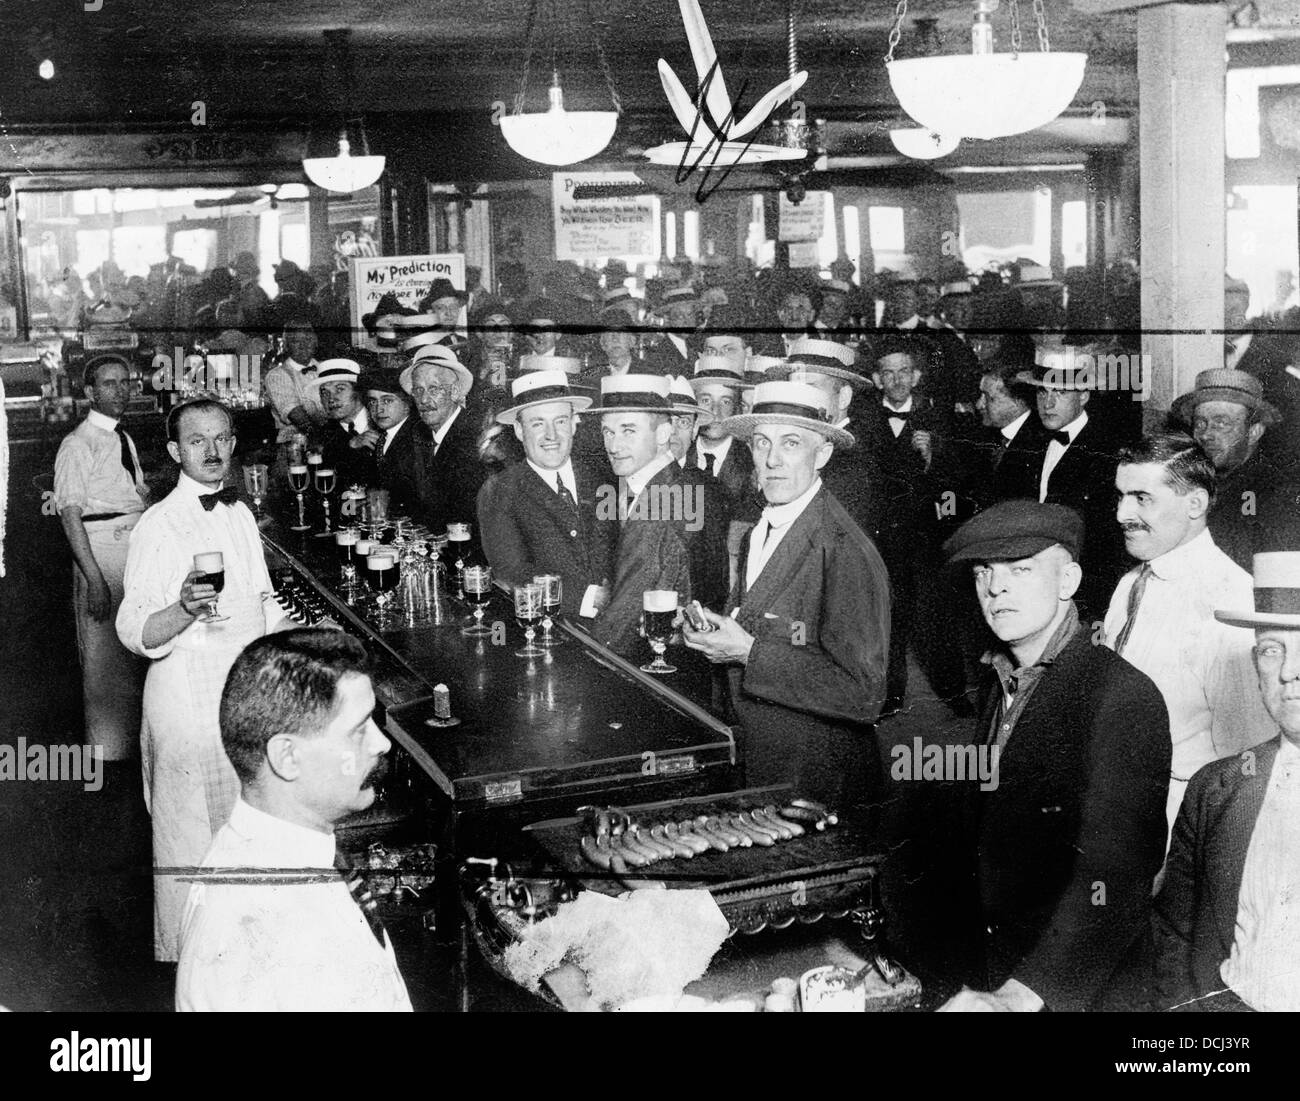 Interior of a crowded bar moments before midnight, June 30, 1919, when prohibition went into effect New York City - Stock Image